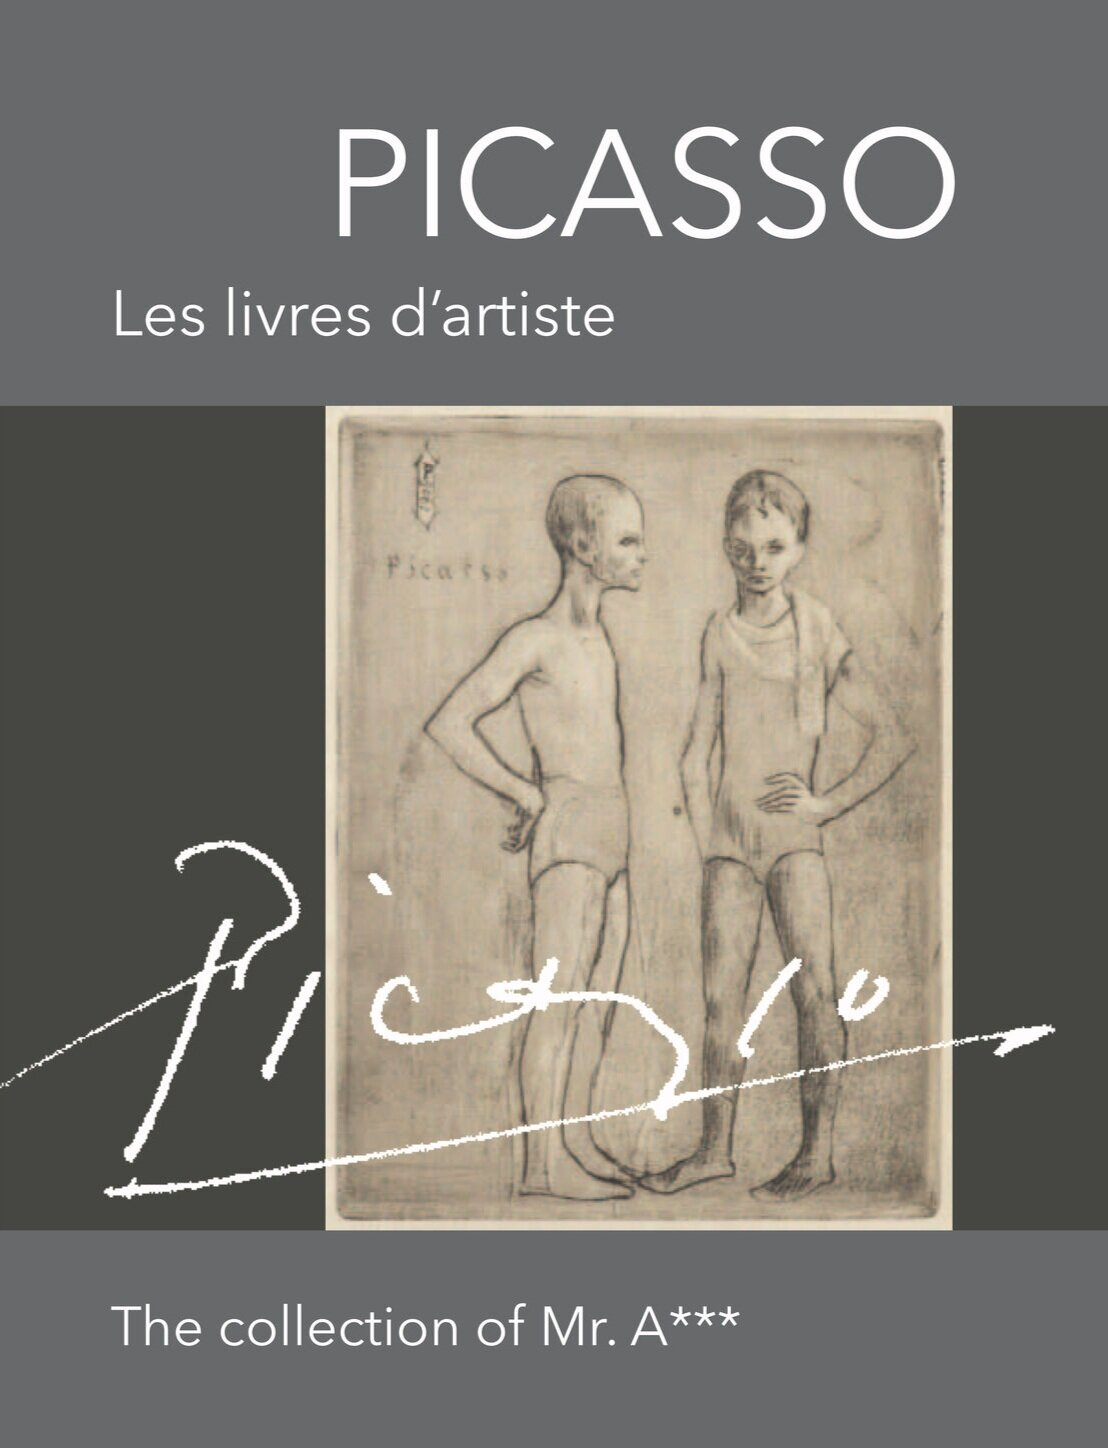 Piccasso_Lowres+catalogue+cover.jpg